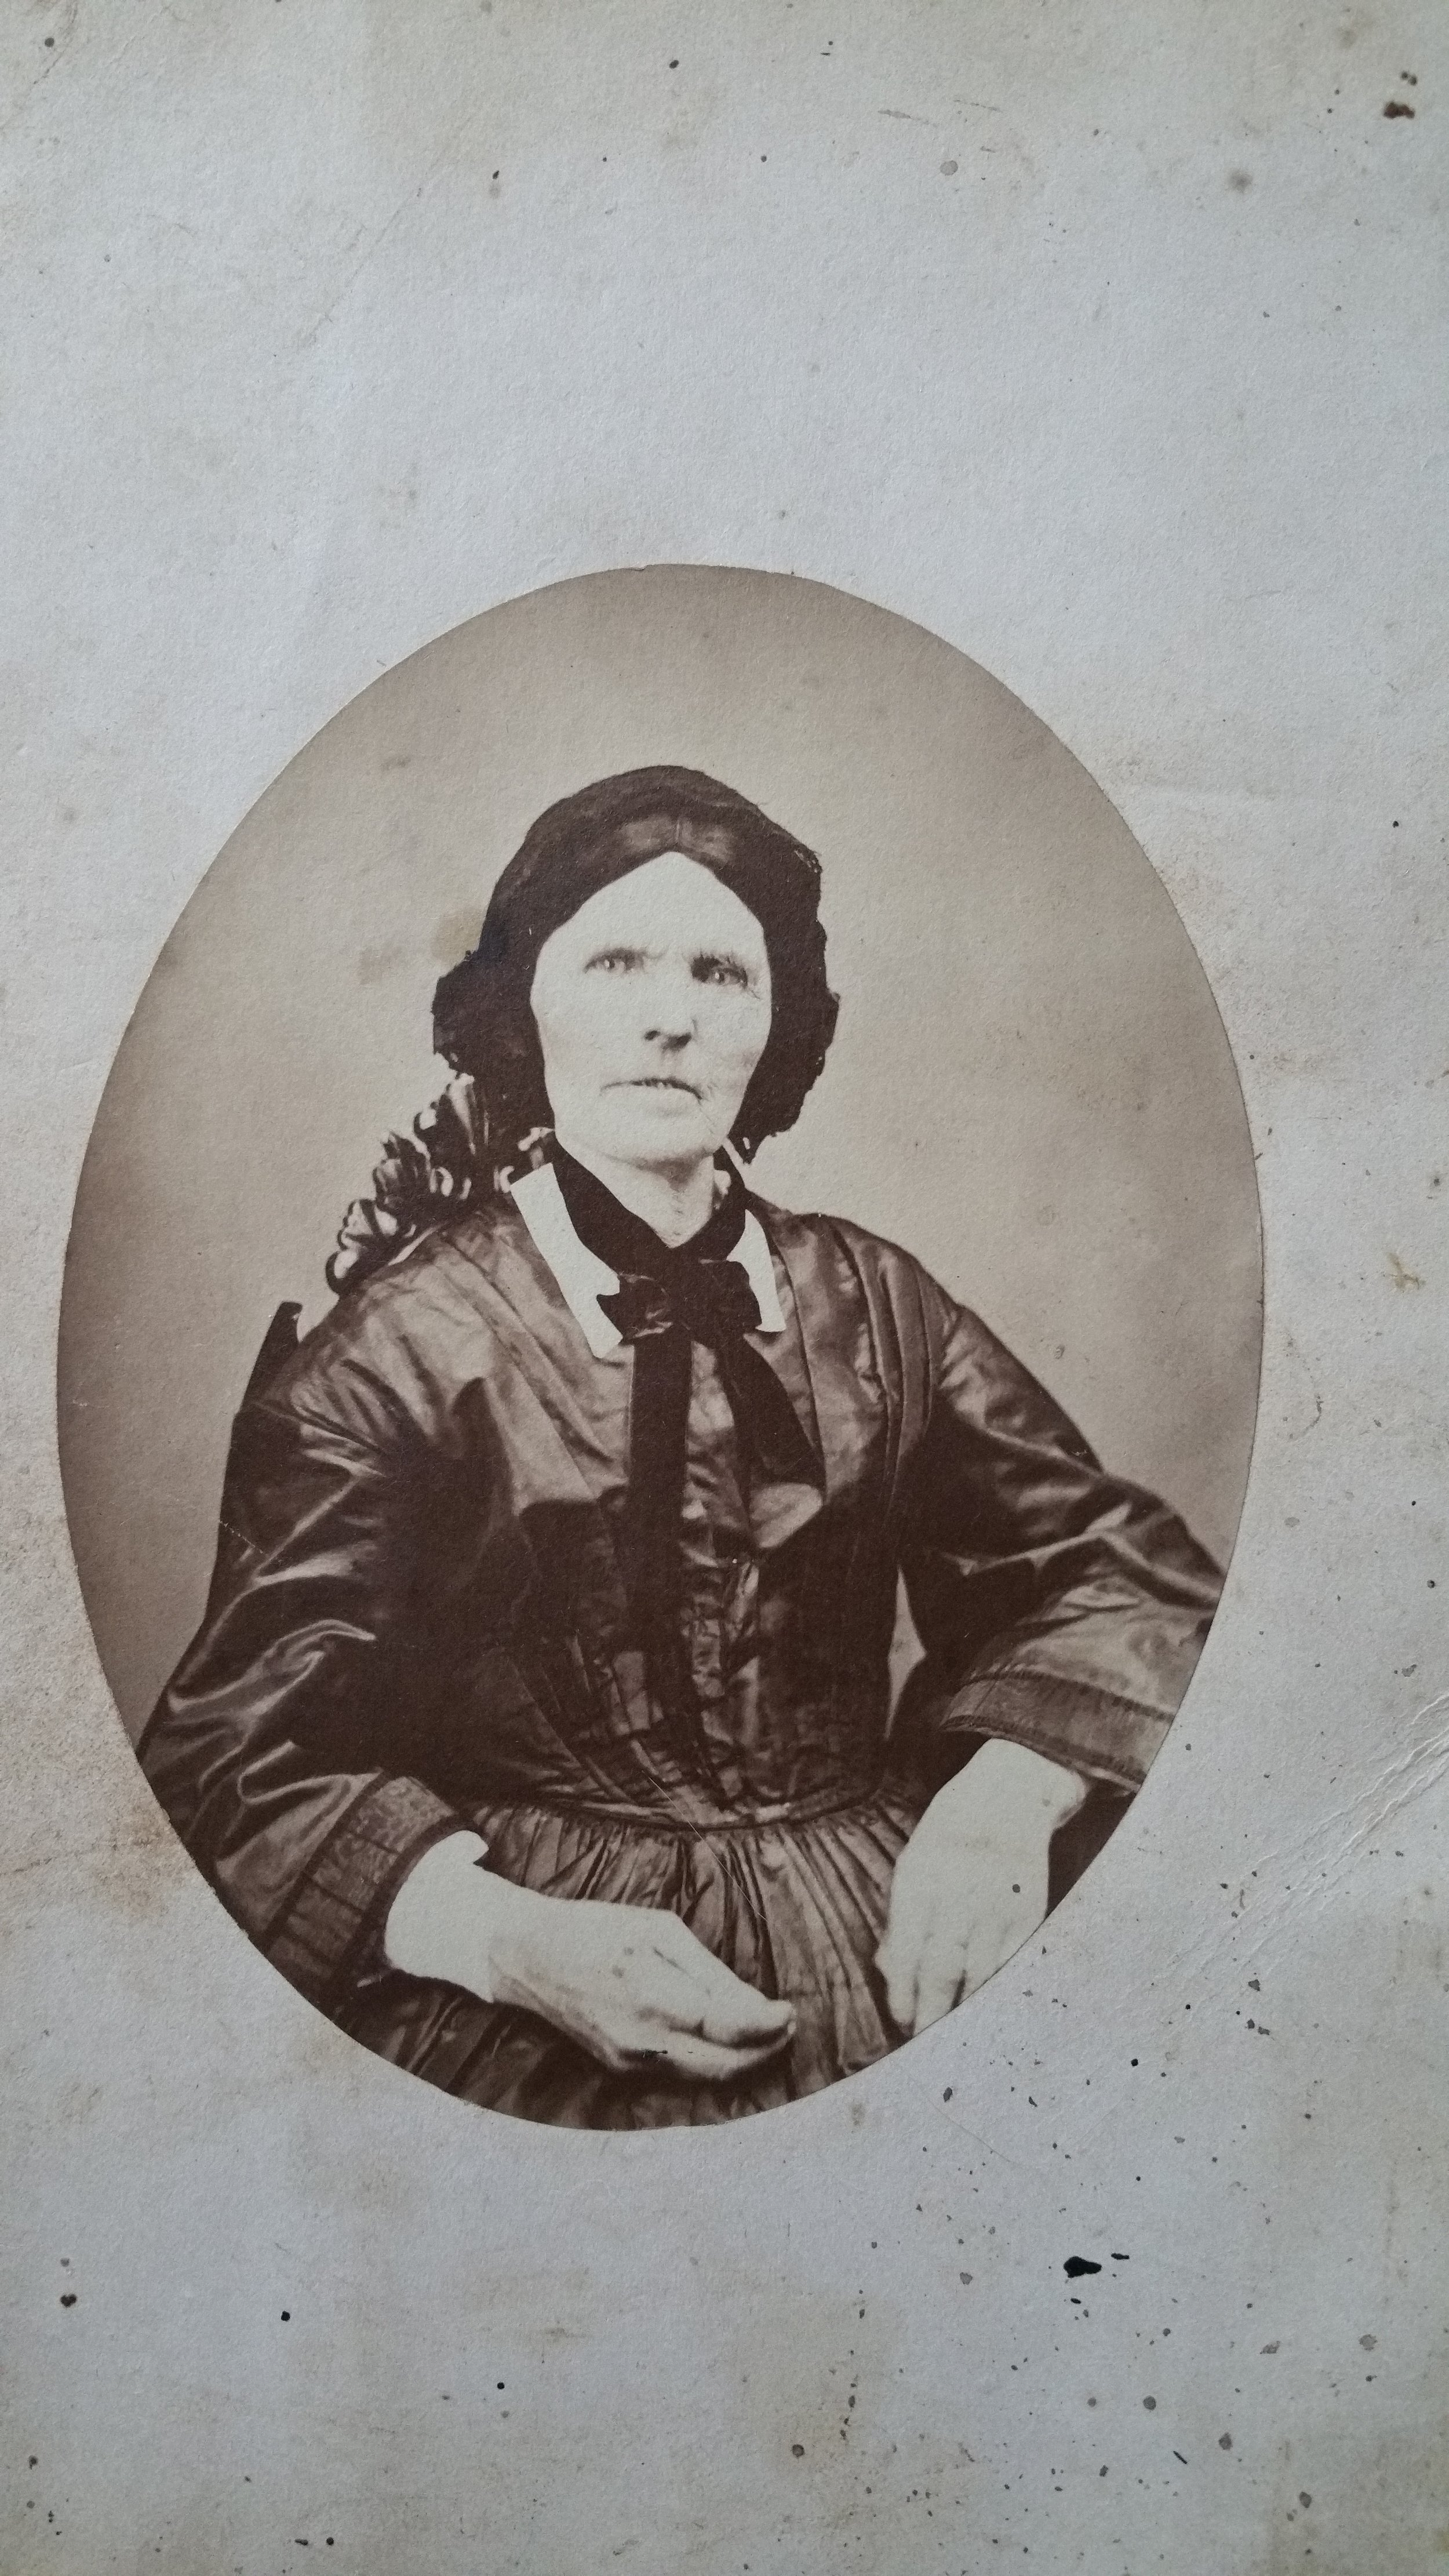 Gratia Denny's Grandmother, an Abenaki who spoke Algonquin. Gratia, named for her grandmother, lived in Cavendish for many years on Main St.